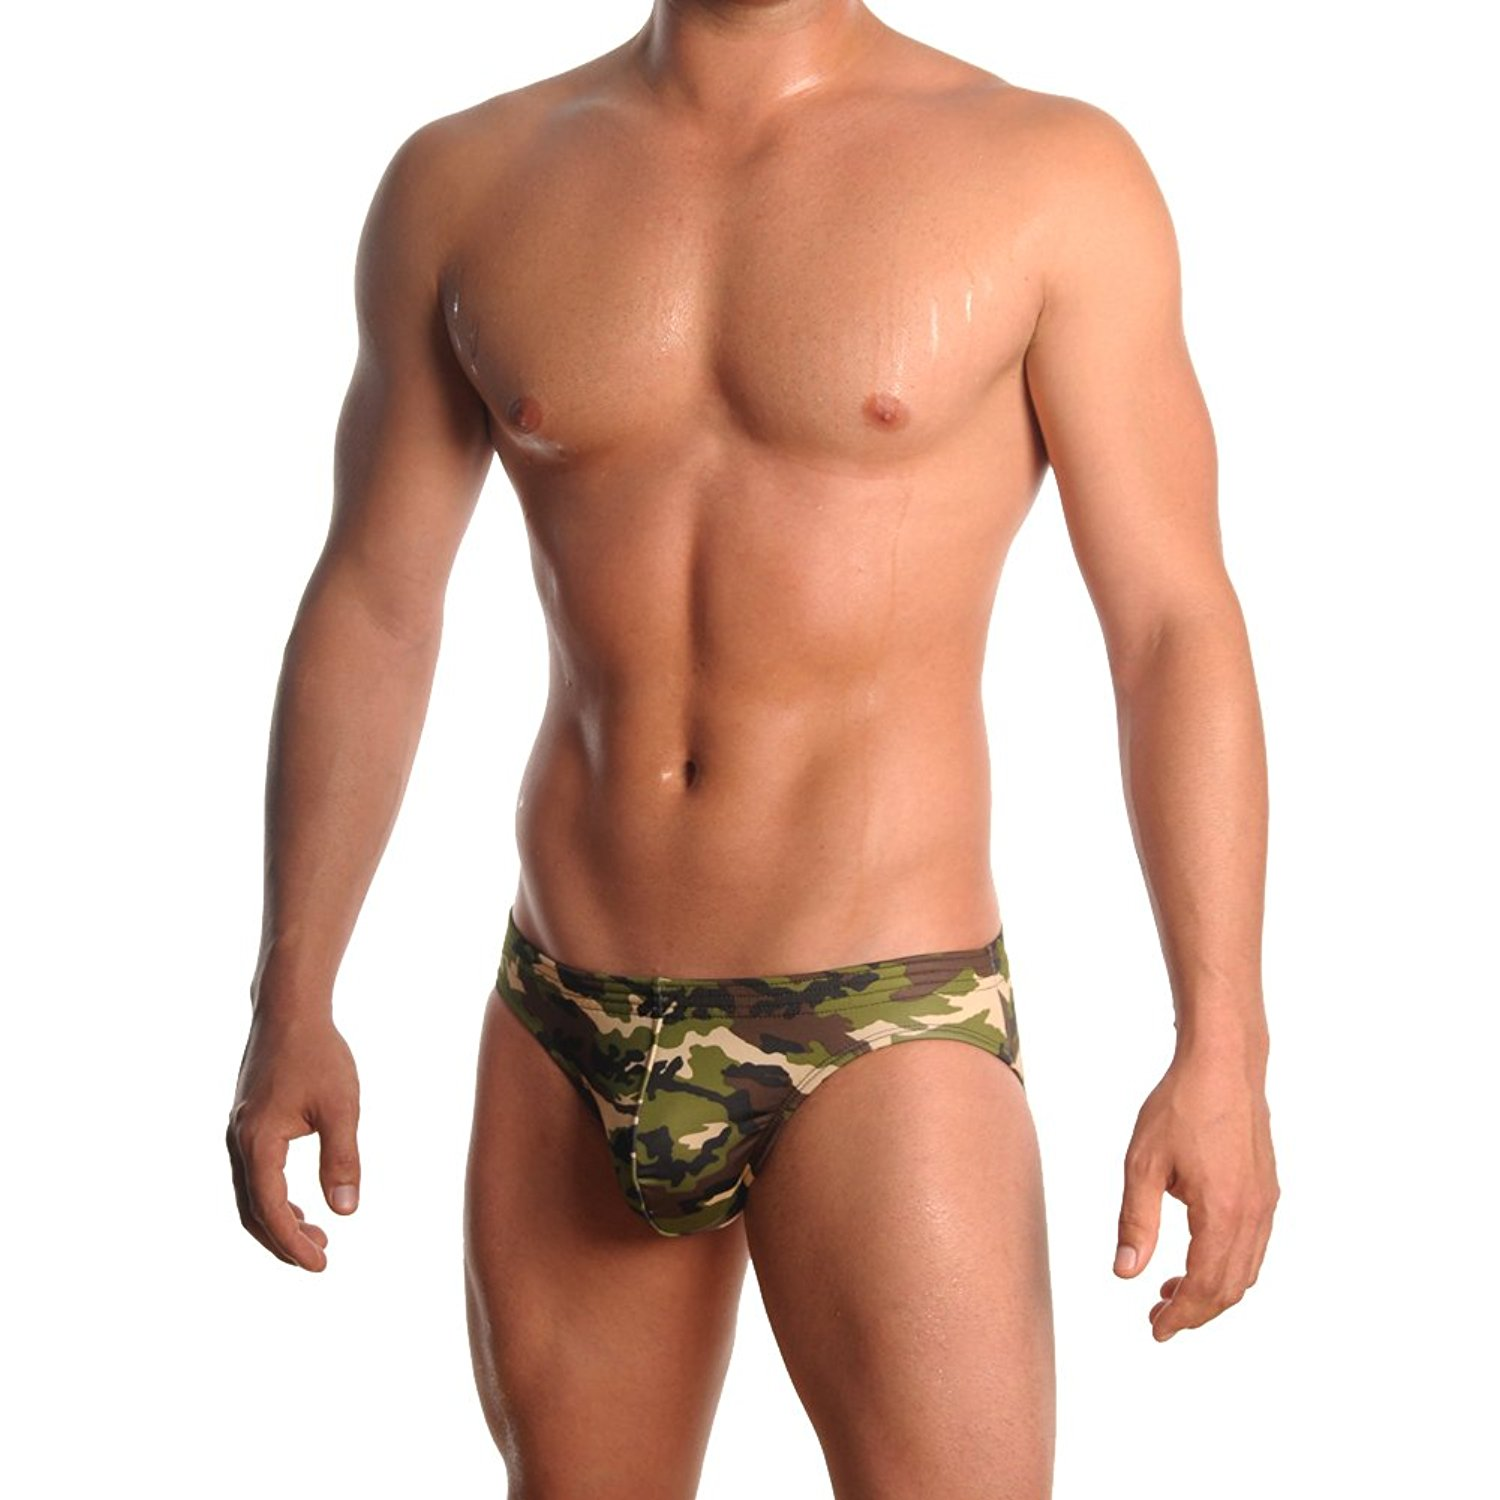 Medium image of mens print contour pouch bikini swimsuit by gary